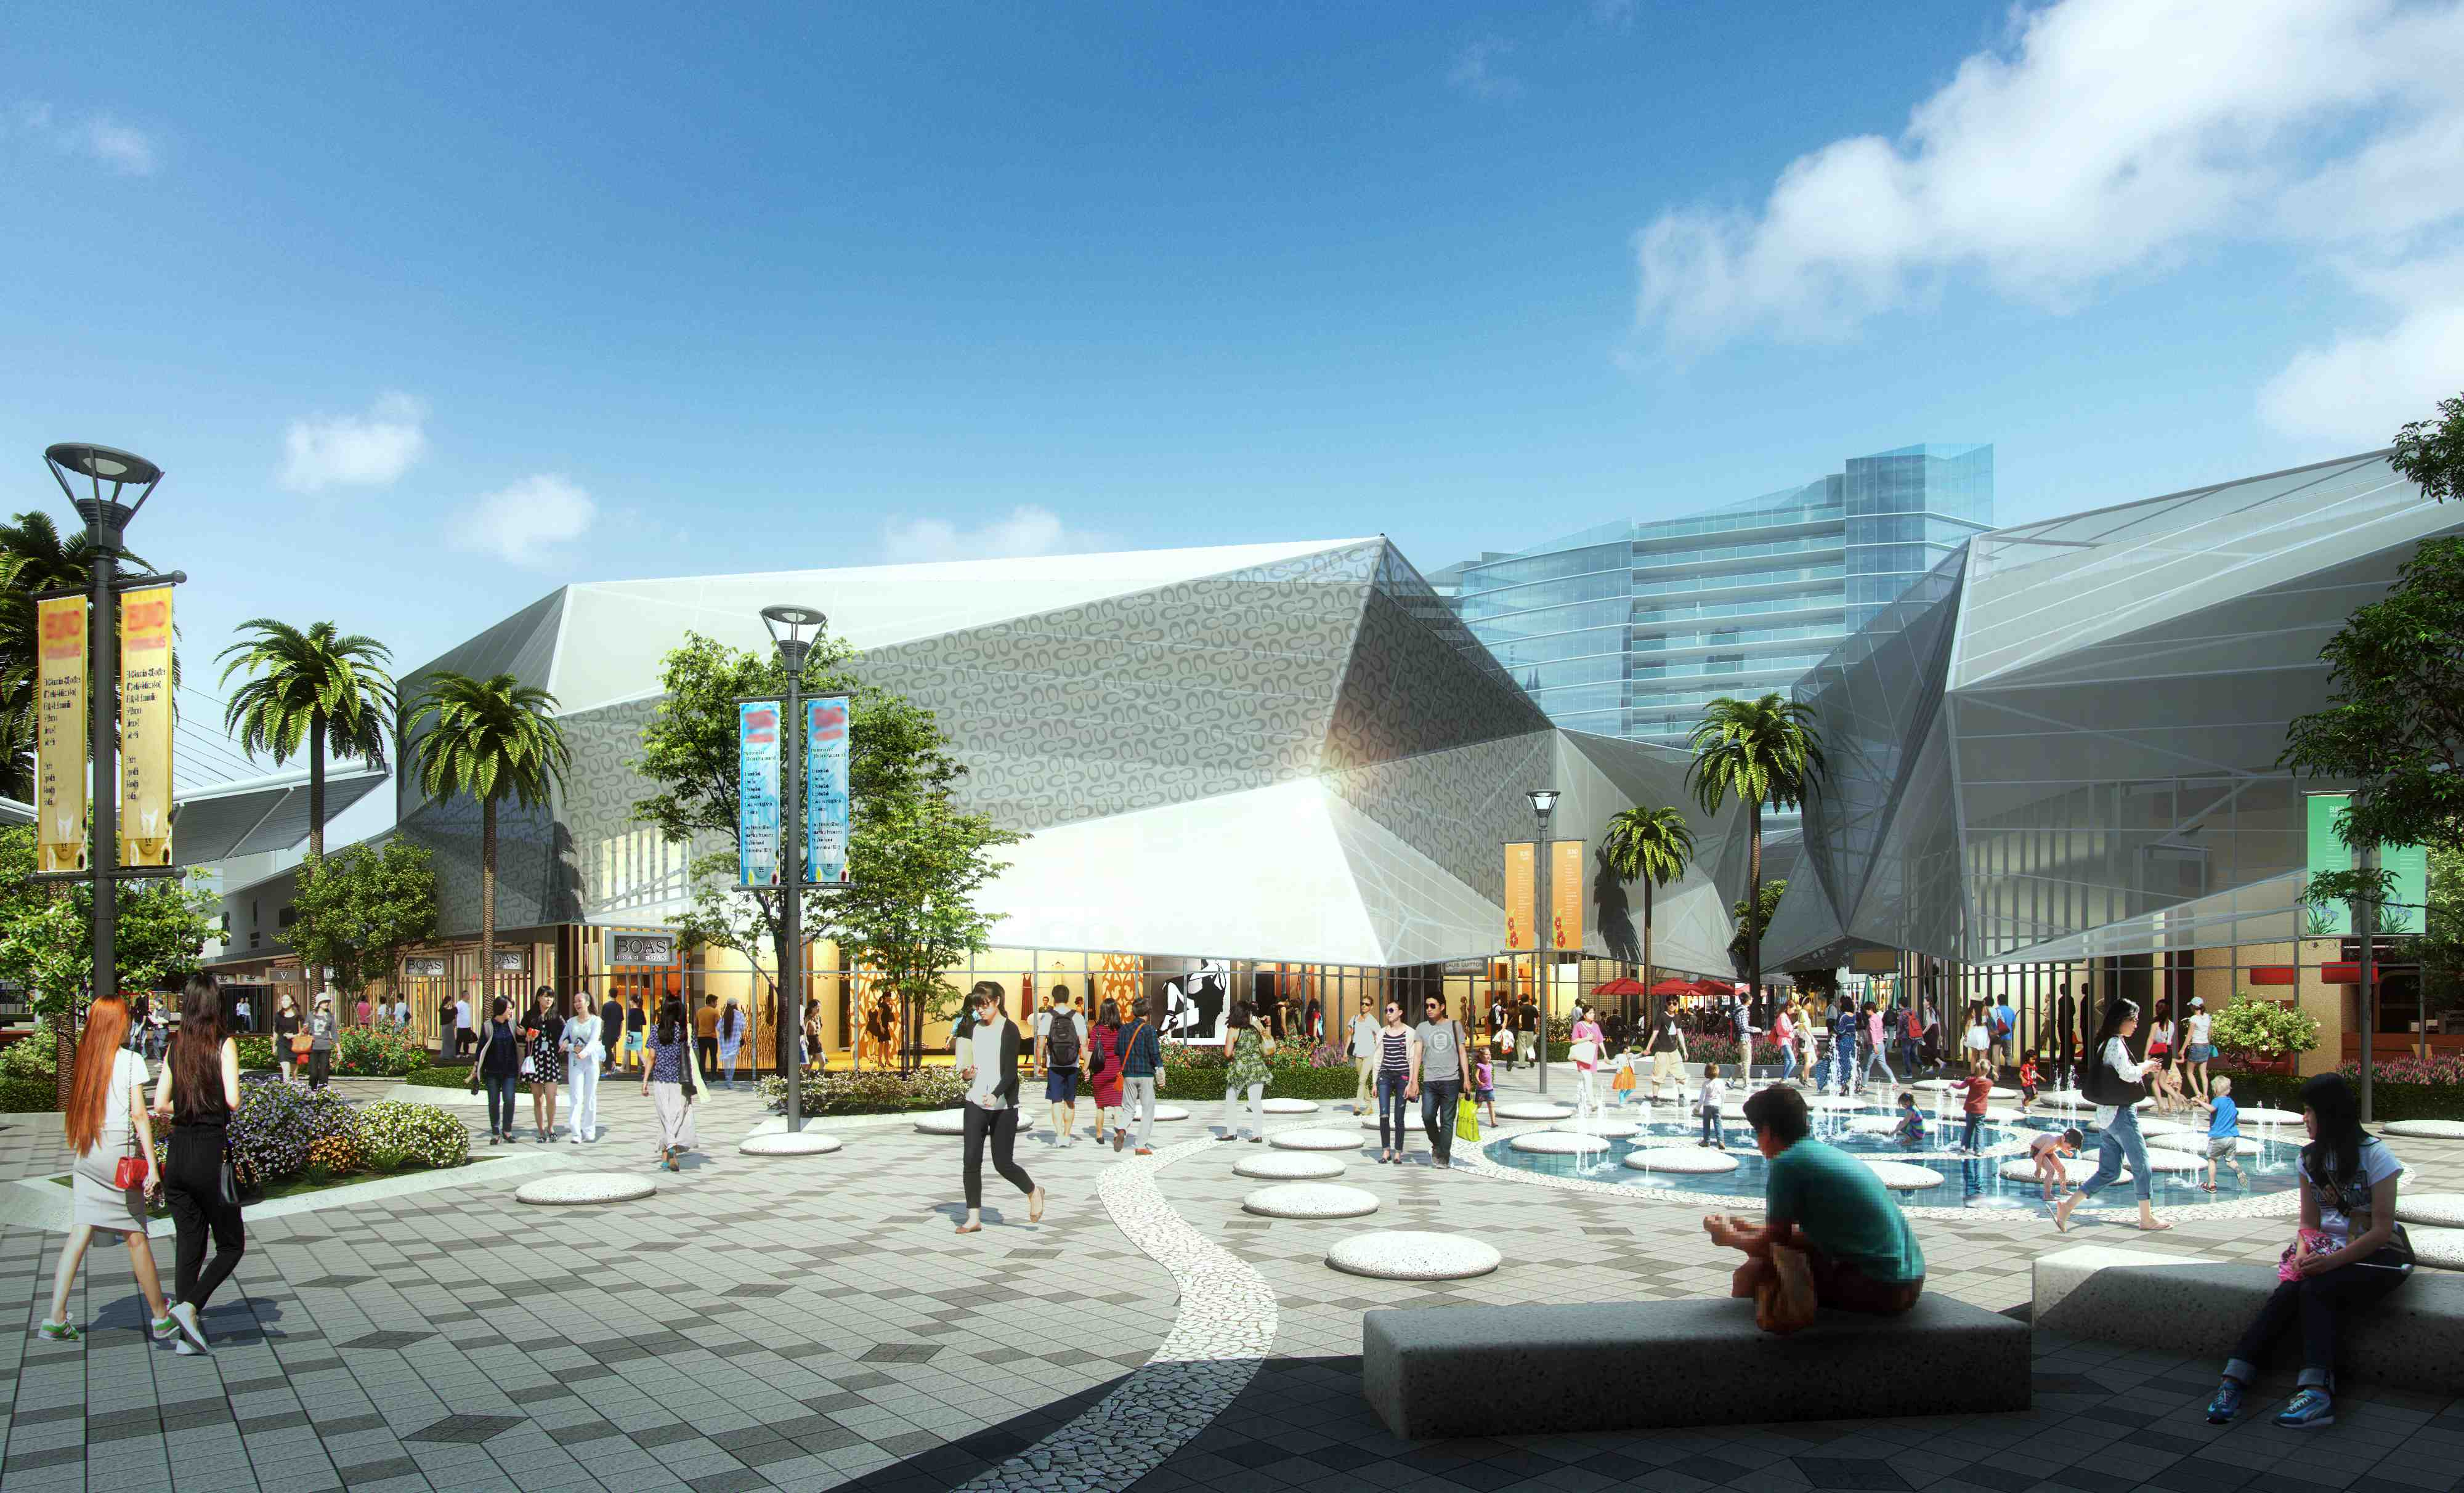 04 - Artist's impression - a street view perspective